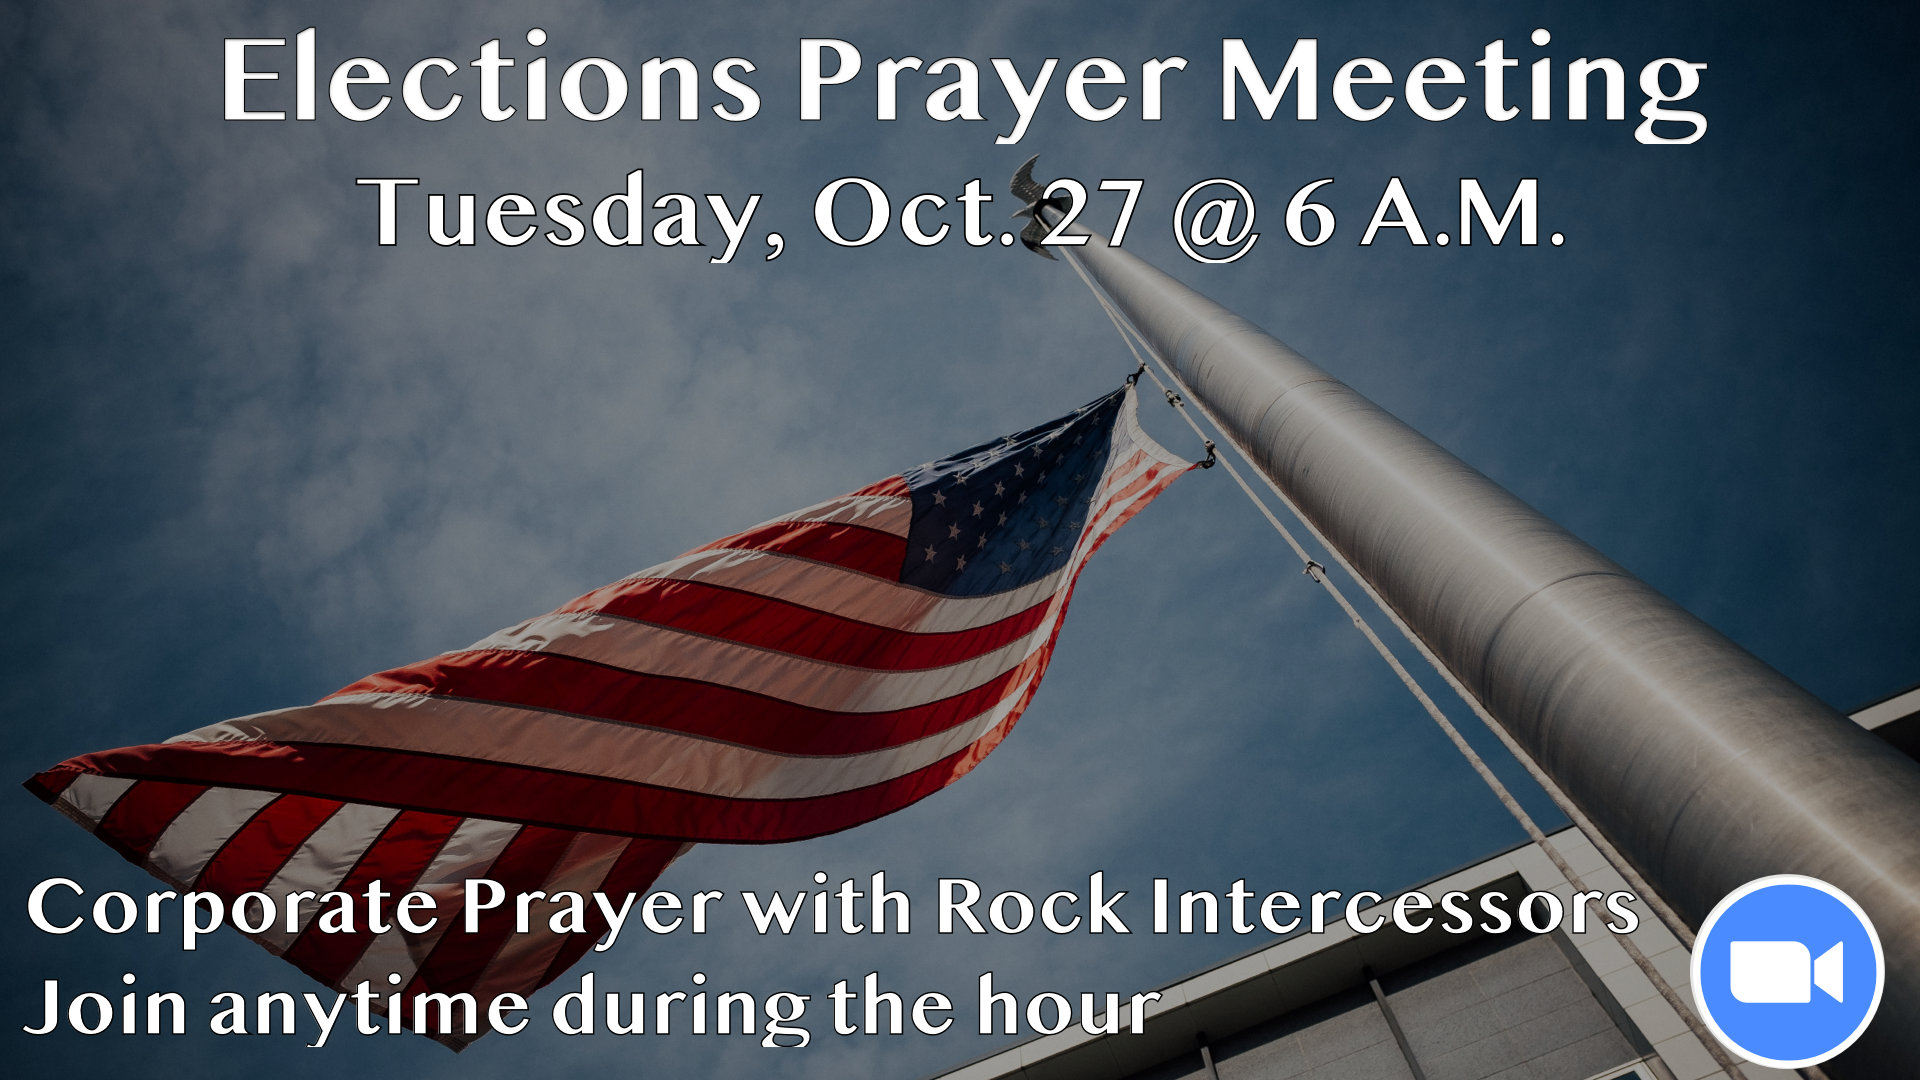 Elections Prayer Meeting